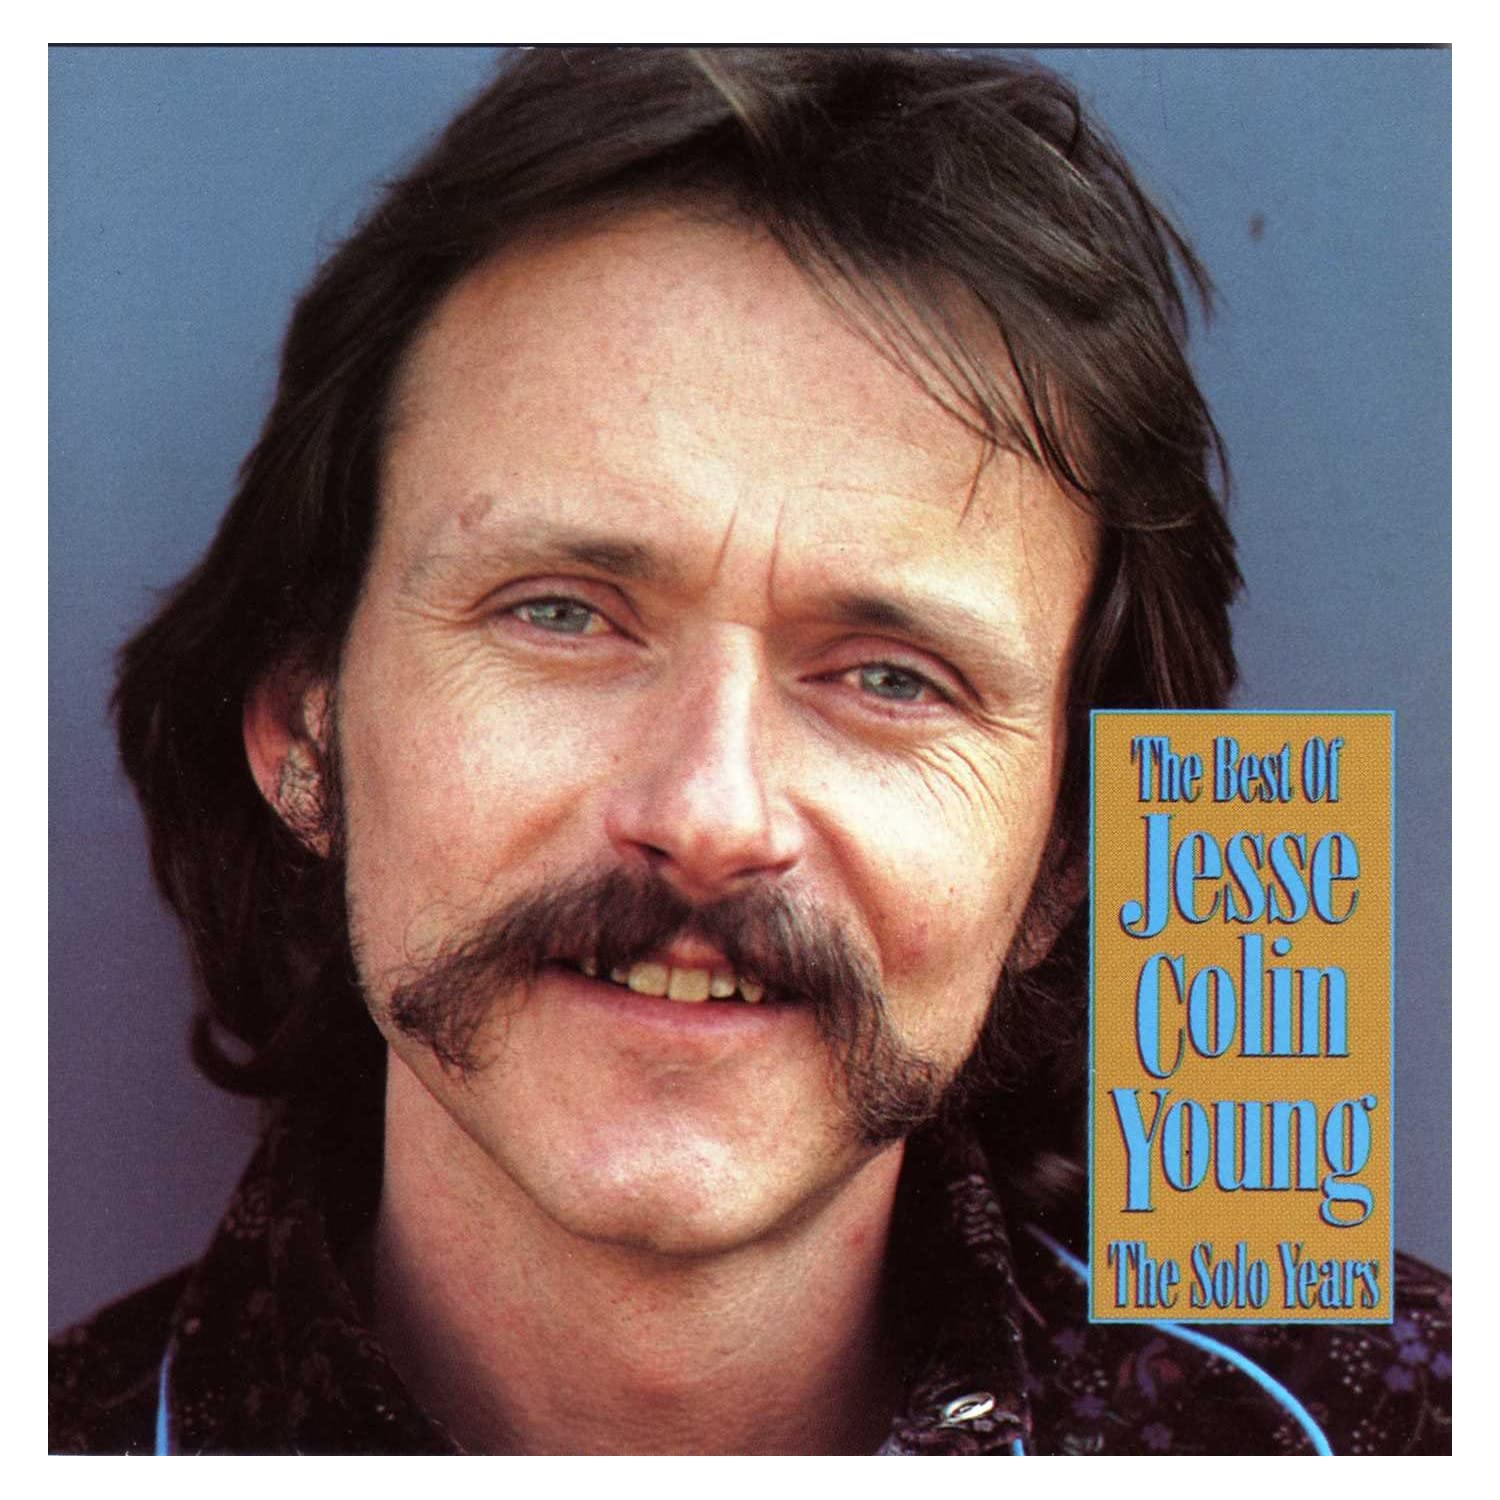 Jesse Colin Young: The Solo Years